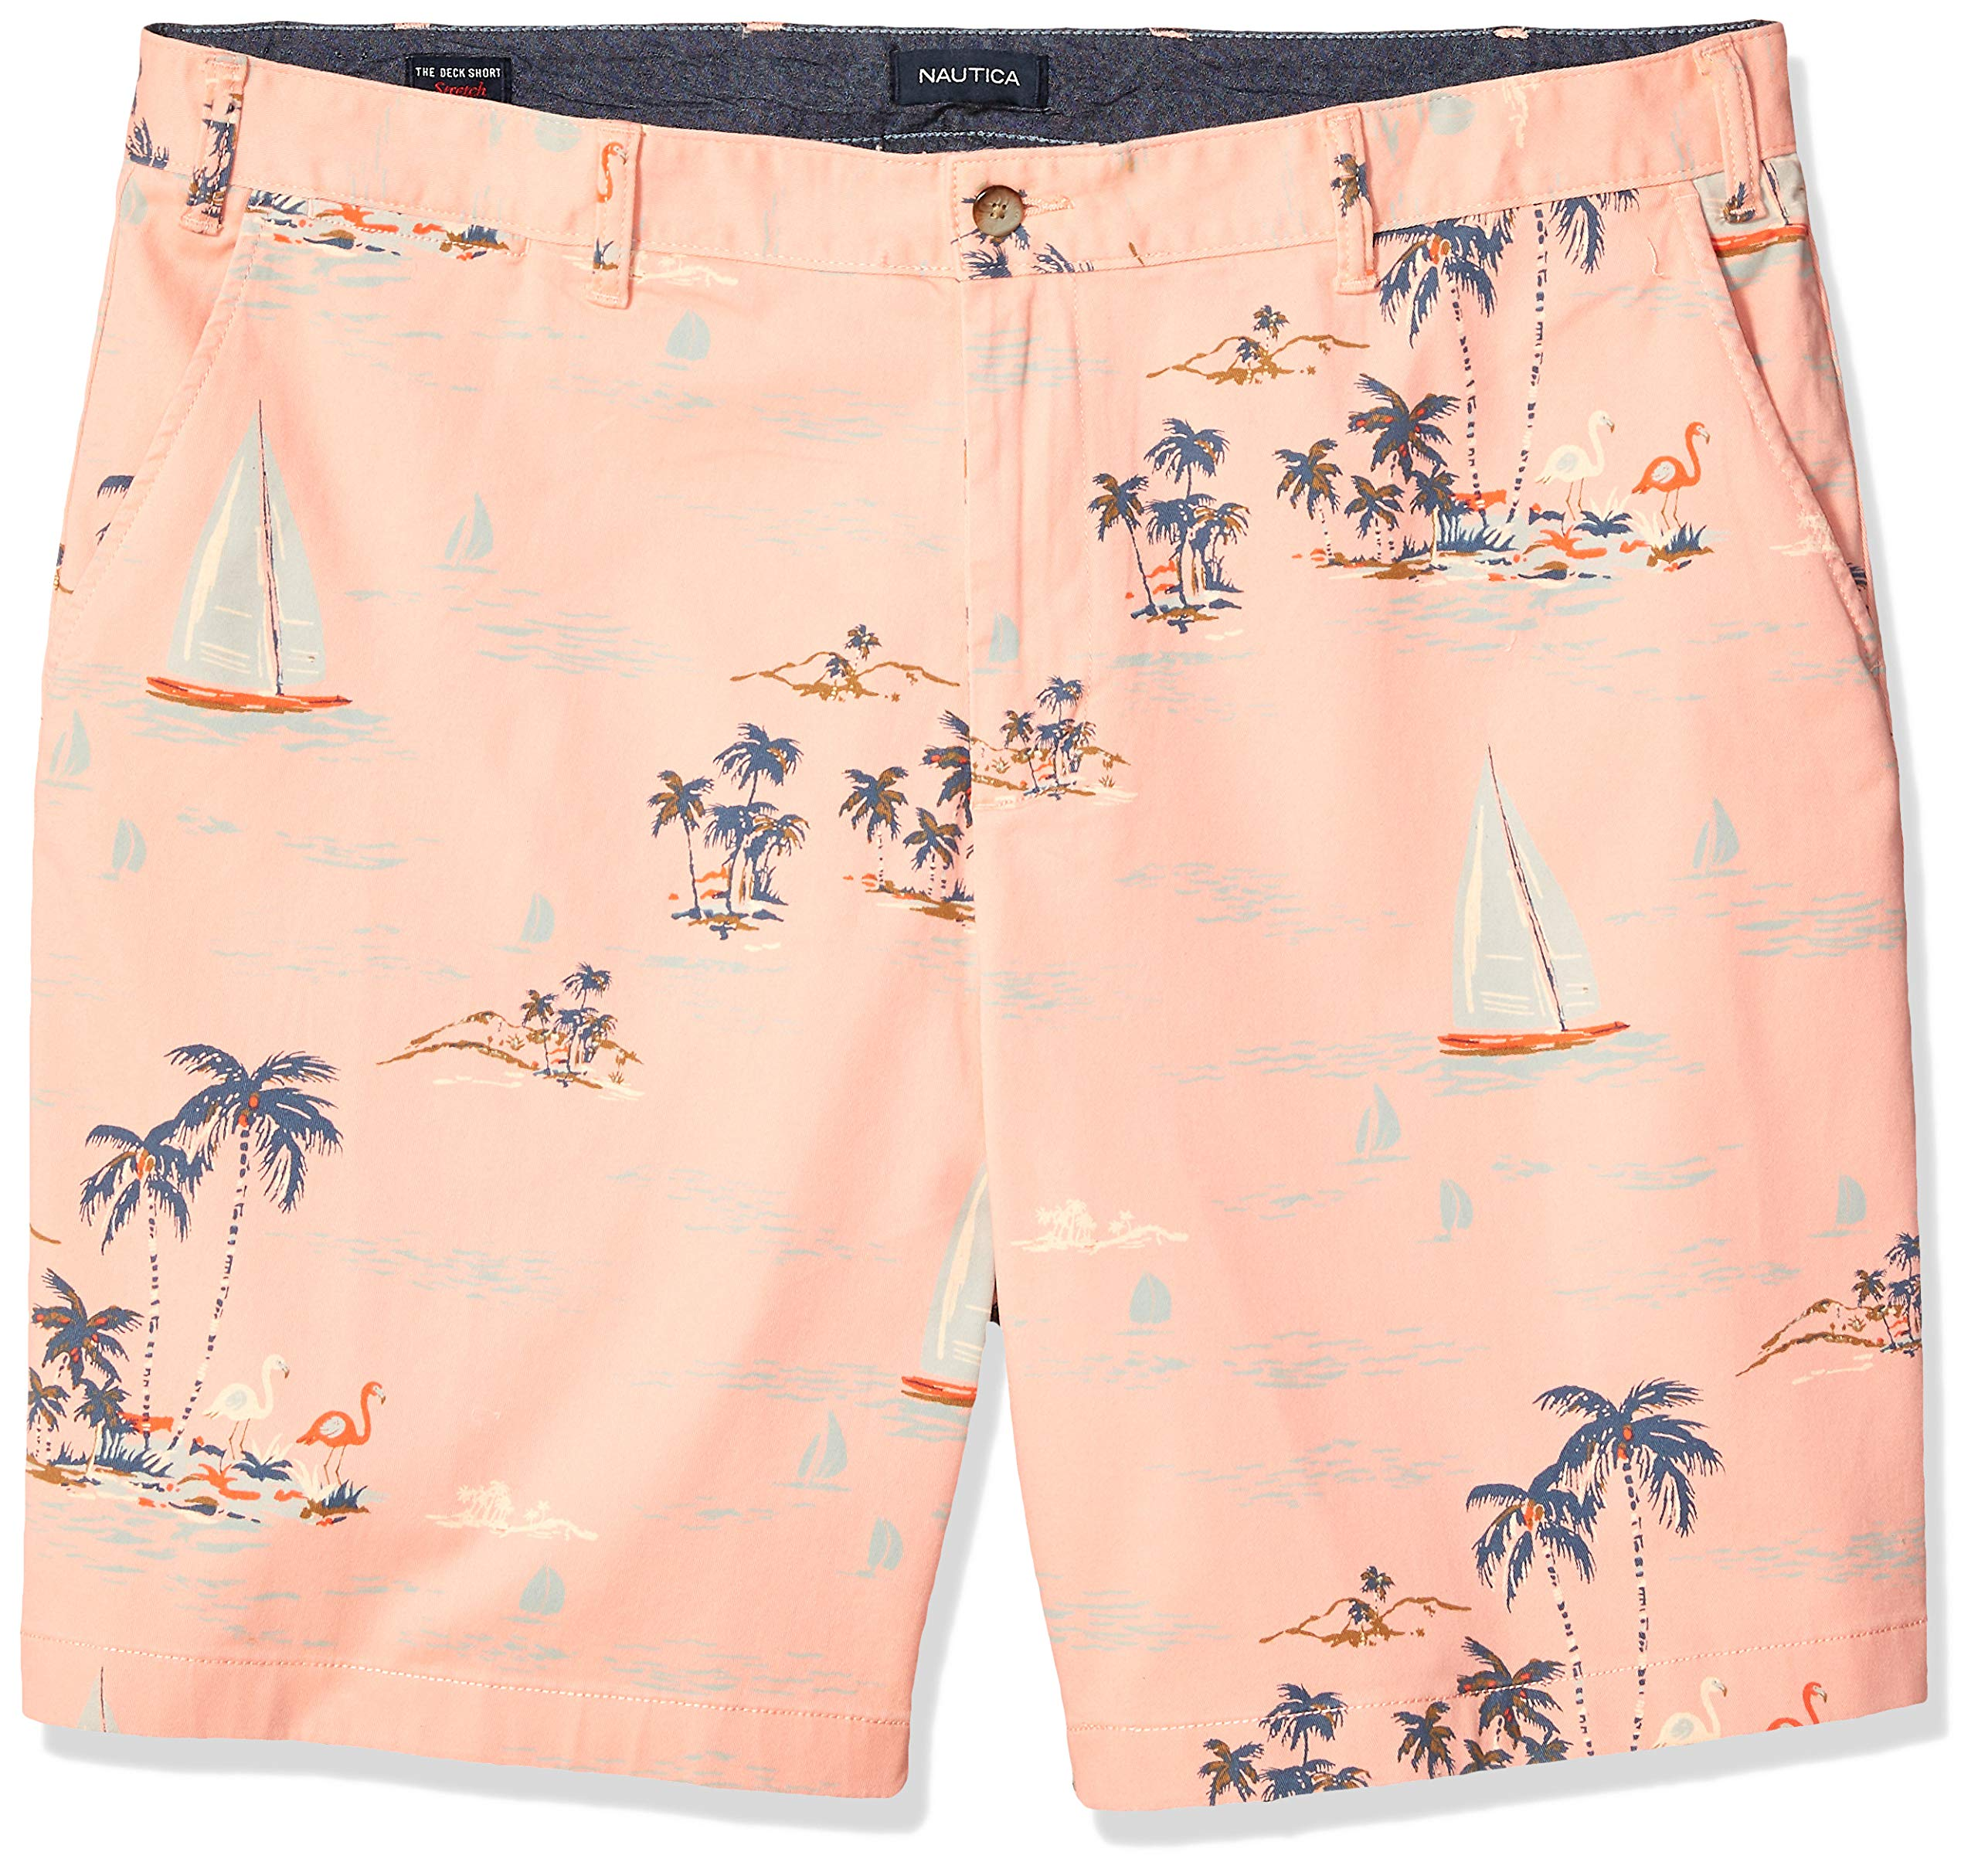 Nautica Men's Big and Tall Classic Fit Flat Front Stretch Printed Deck Short, Peach Glow, 46W